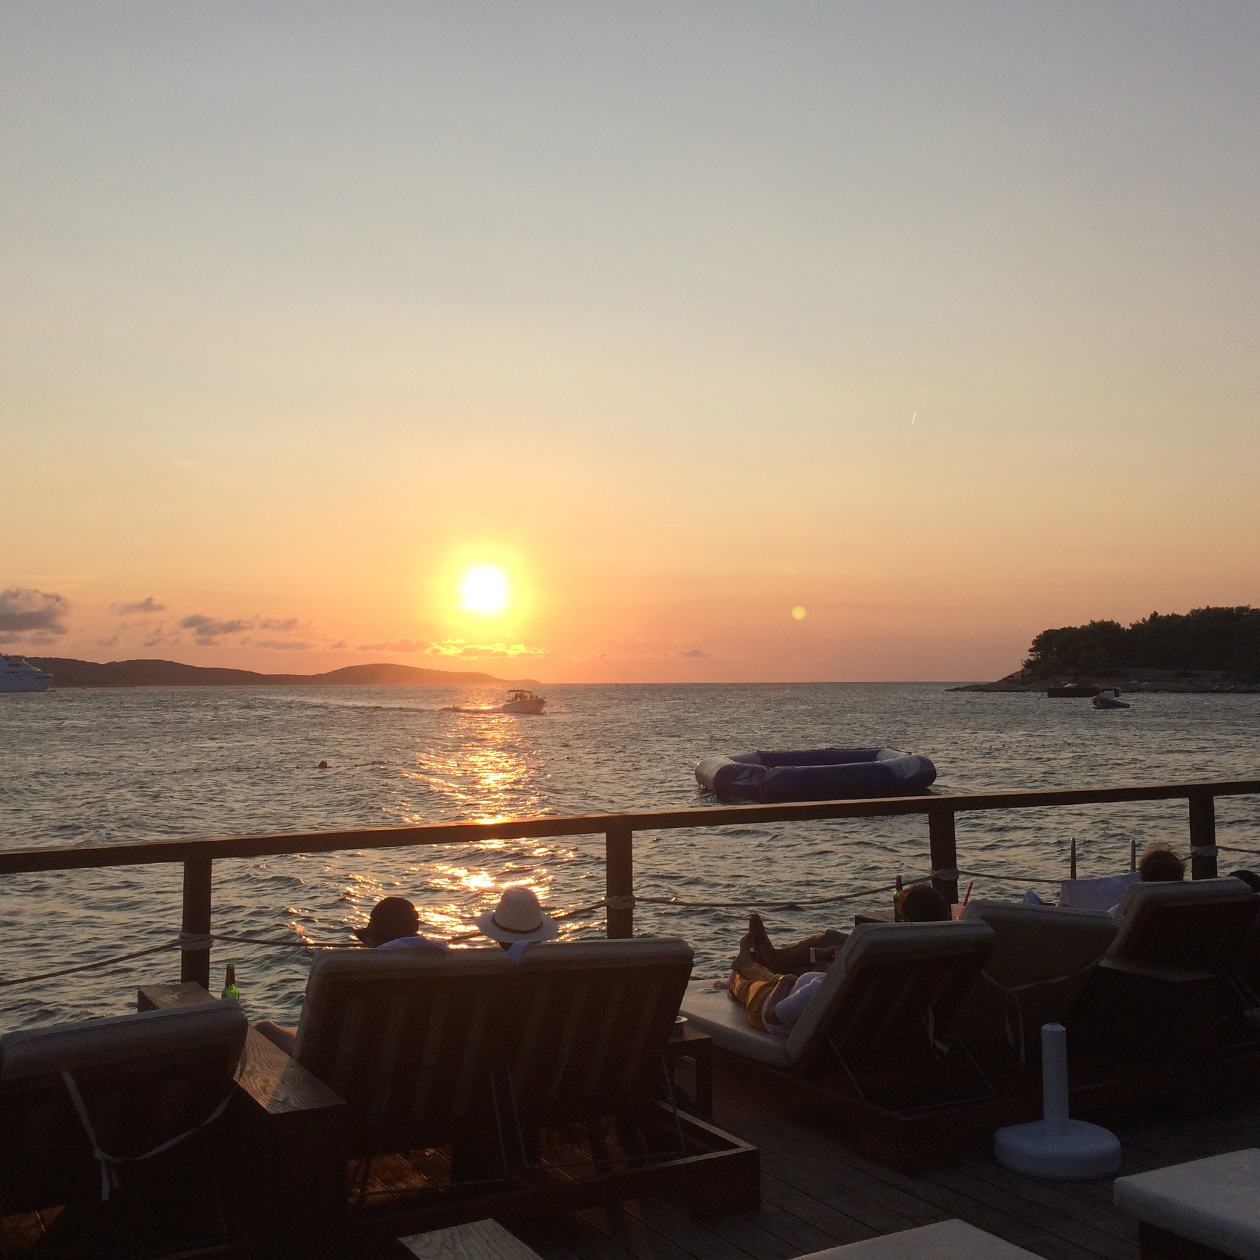 hula hula bar beach drink party music sunset hvar city island travel croatia